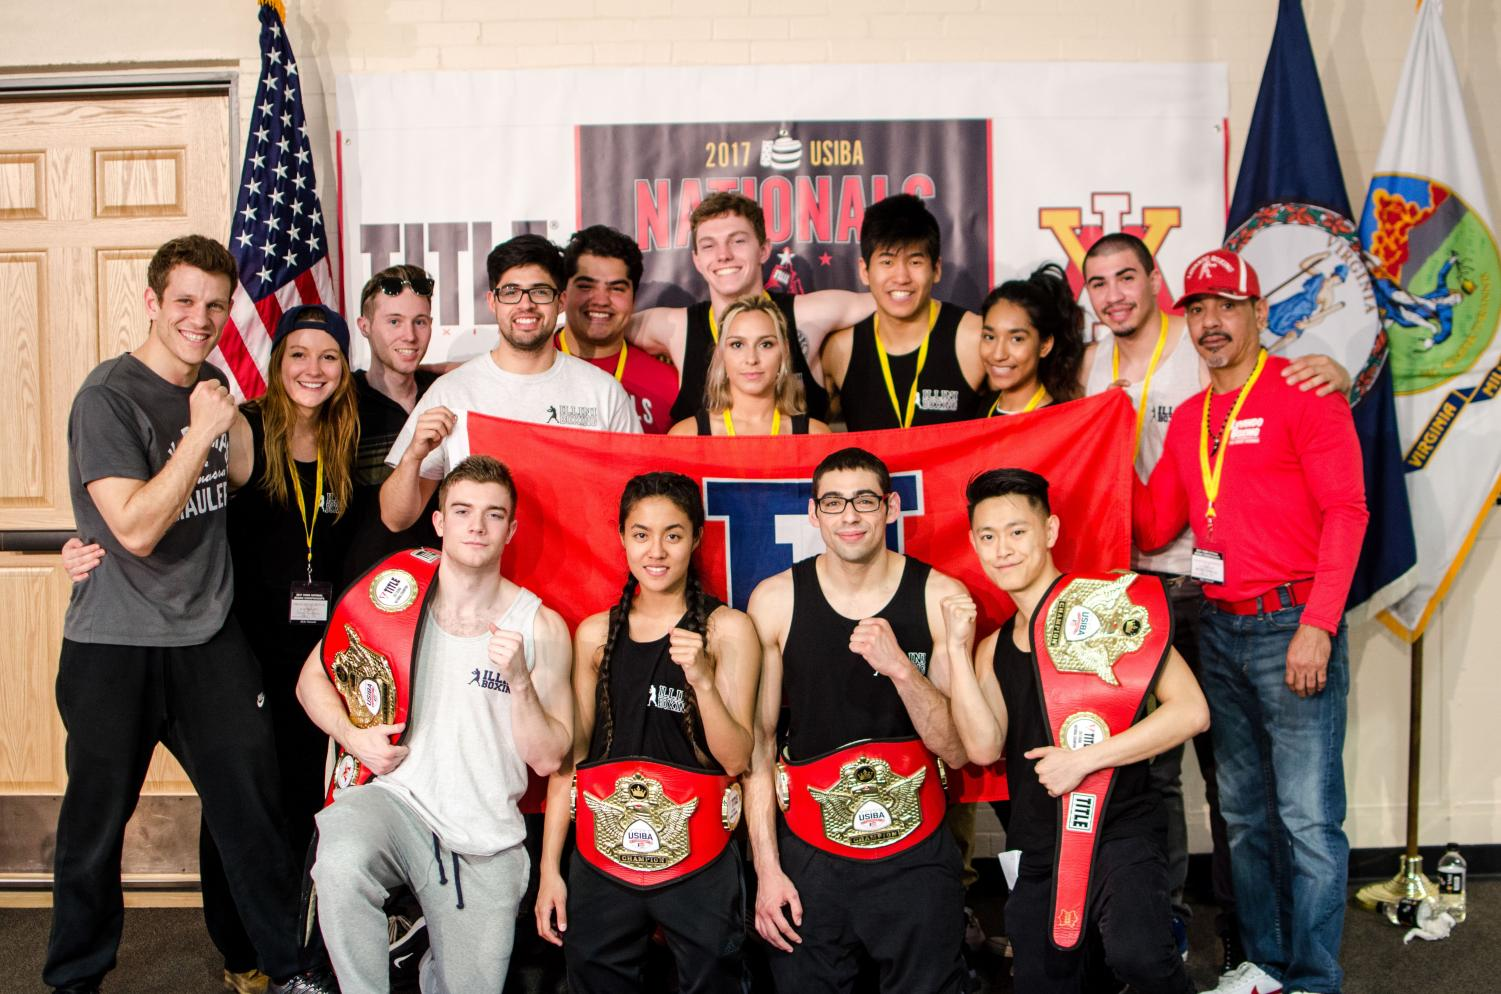 The Illini Boxing Club won 4 championship belts at the 2017 USIBA National Championships at the Virginia Military Institute in Lexington, Virginia.